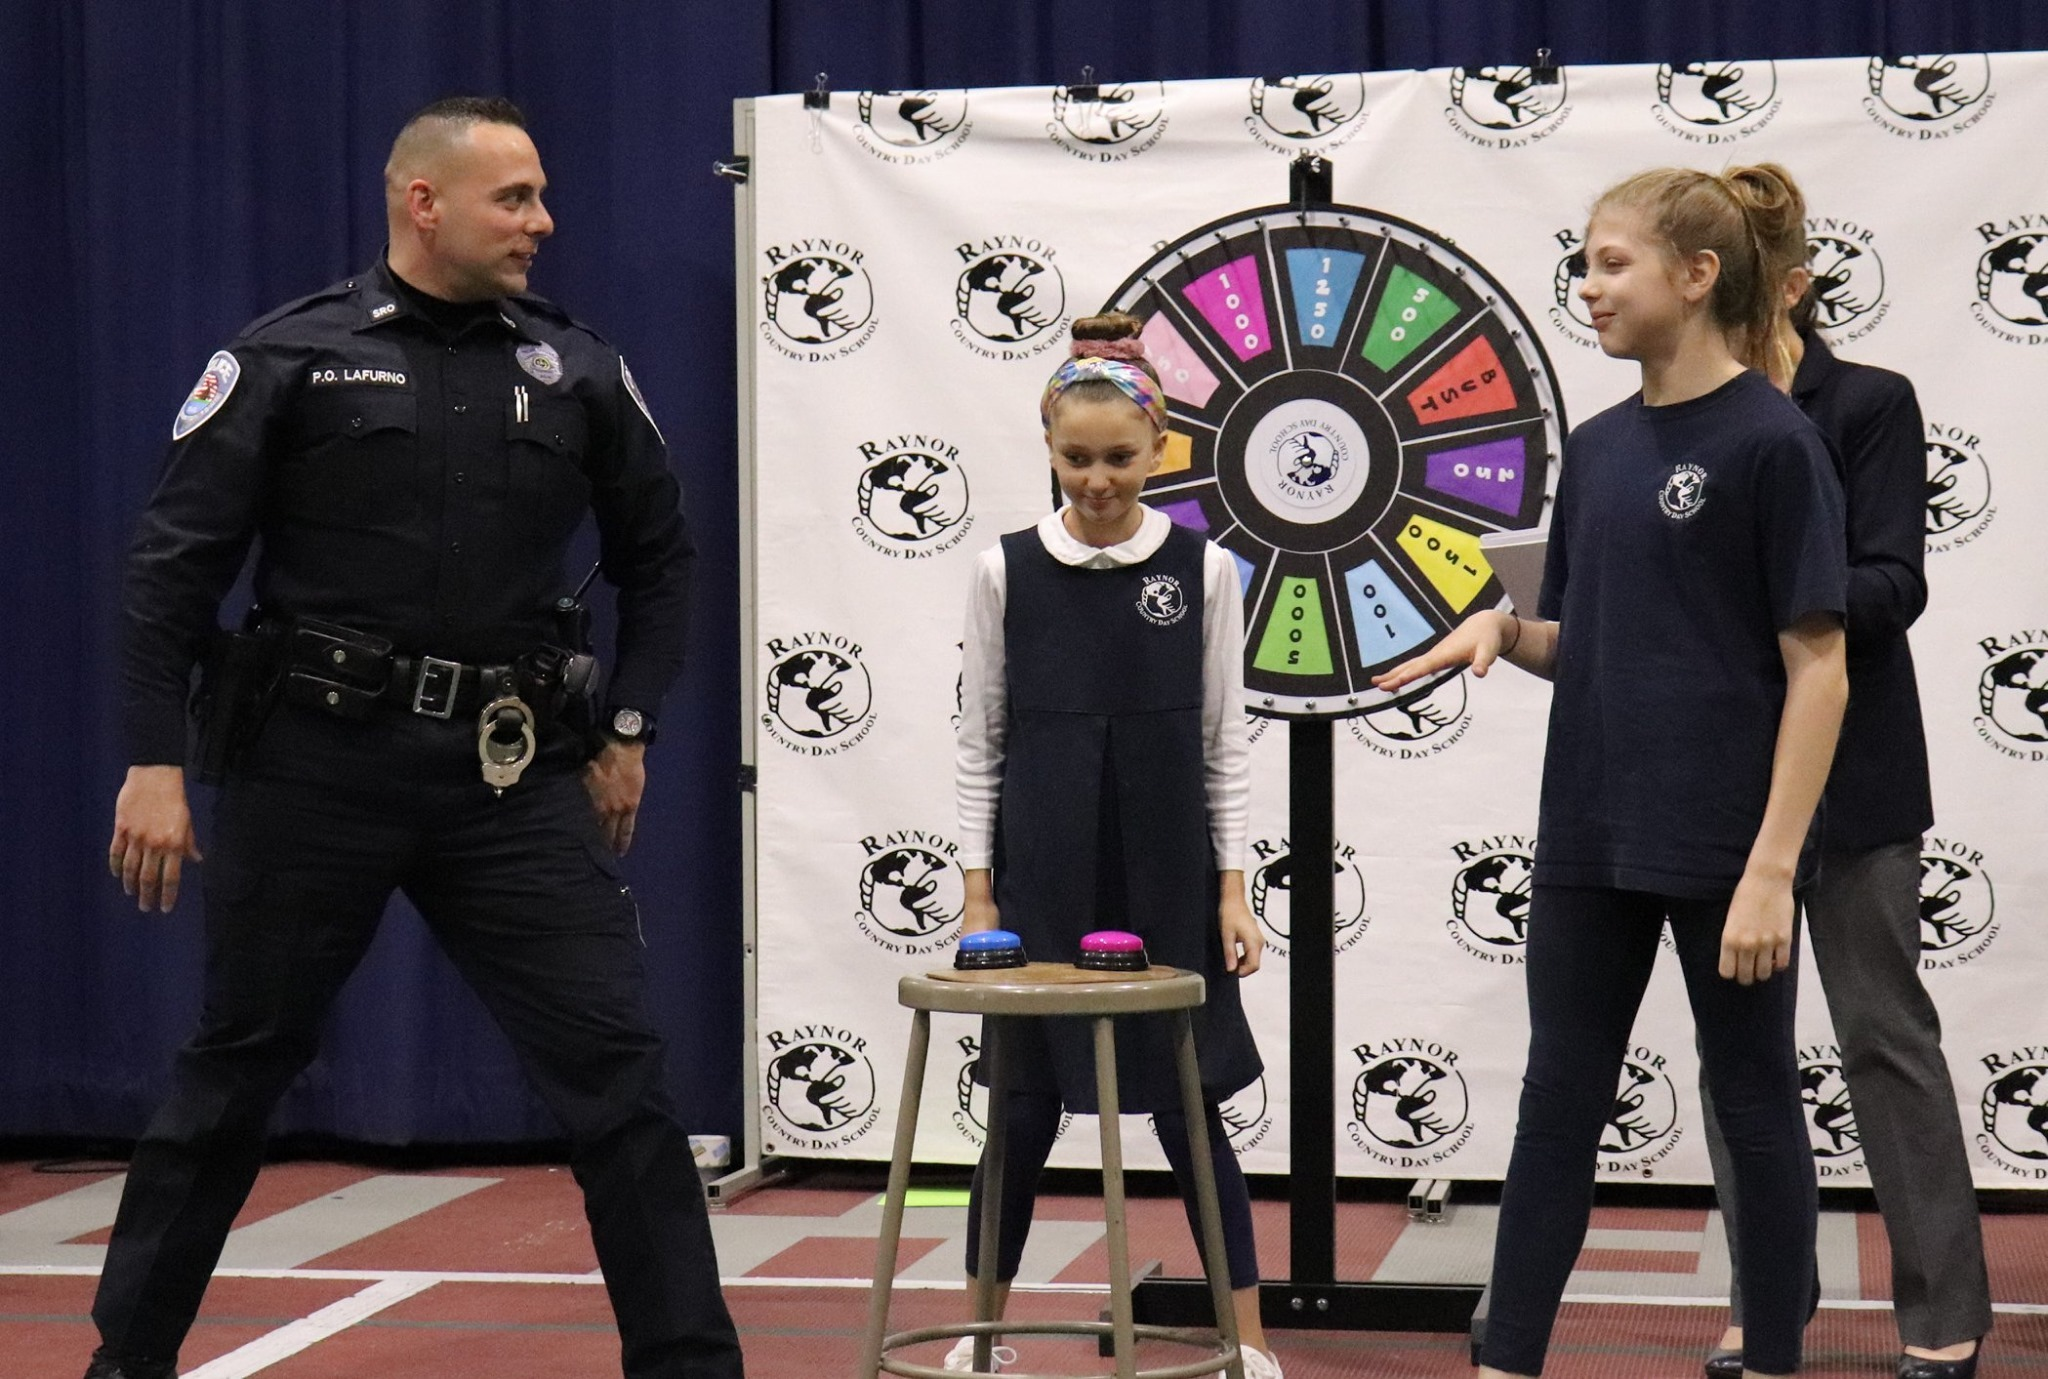 On Thursday, February 13, Raynor Country Day School and the Southampton Town Police Department faced off in the school's first